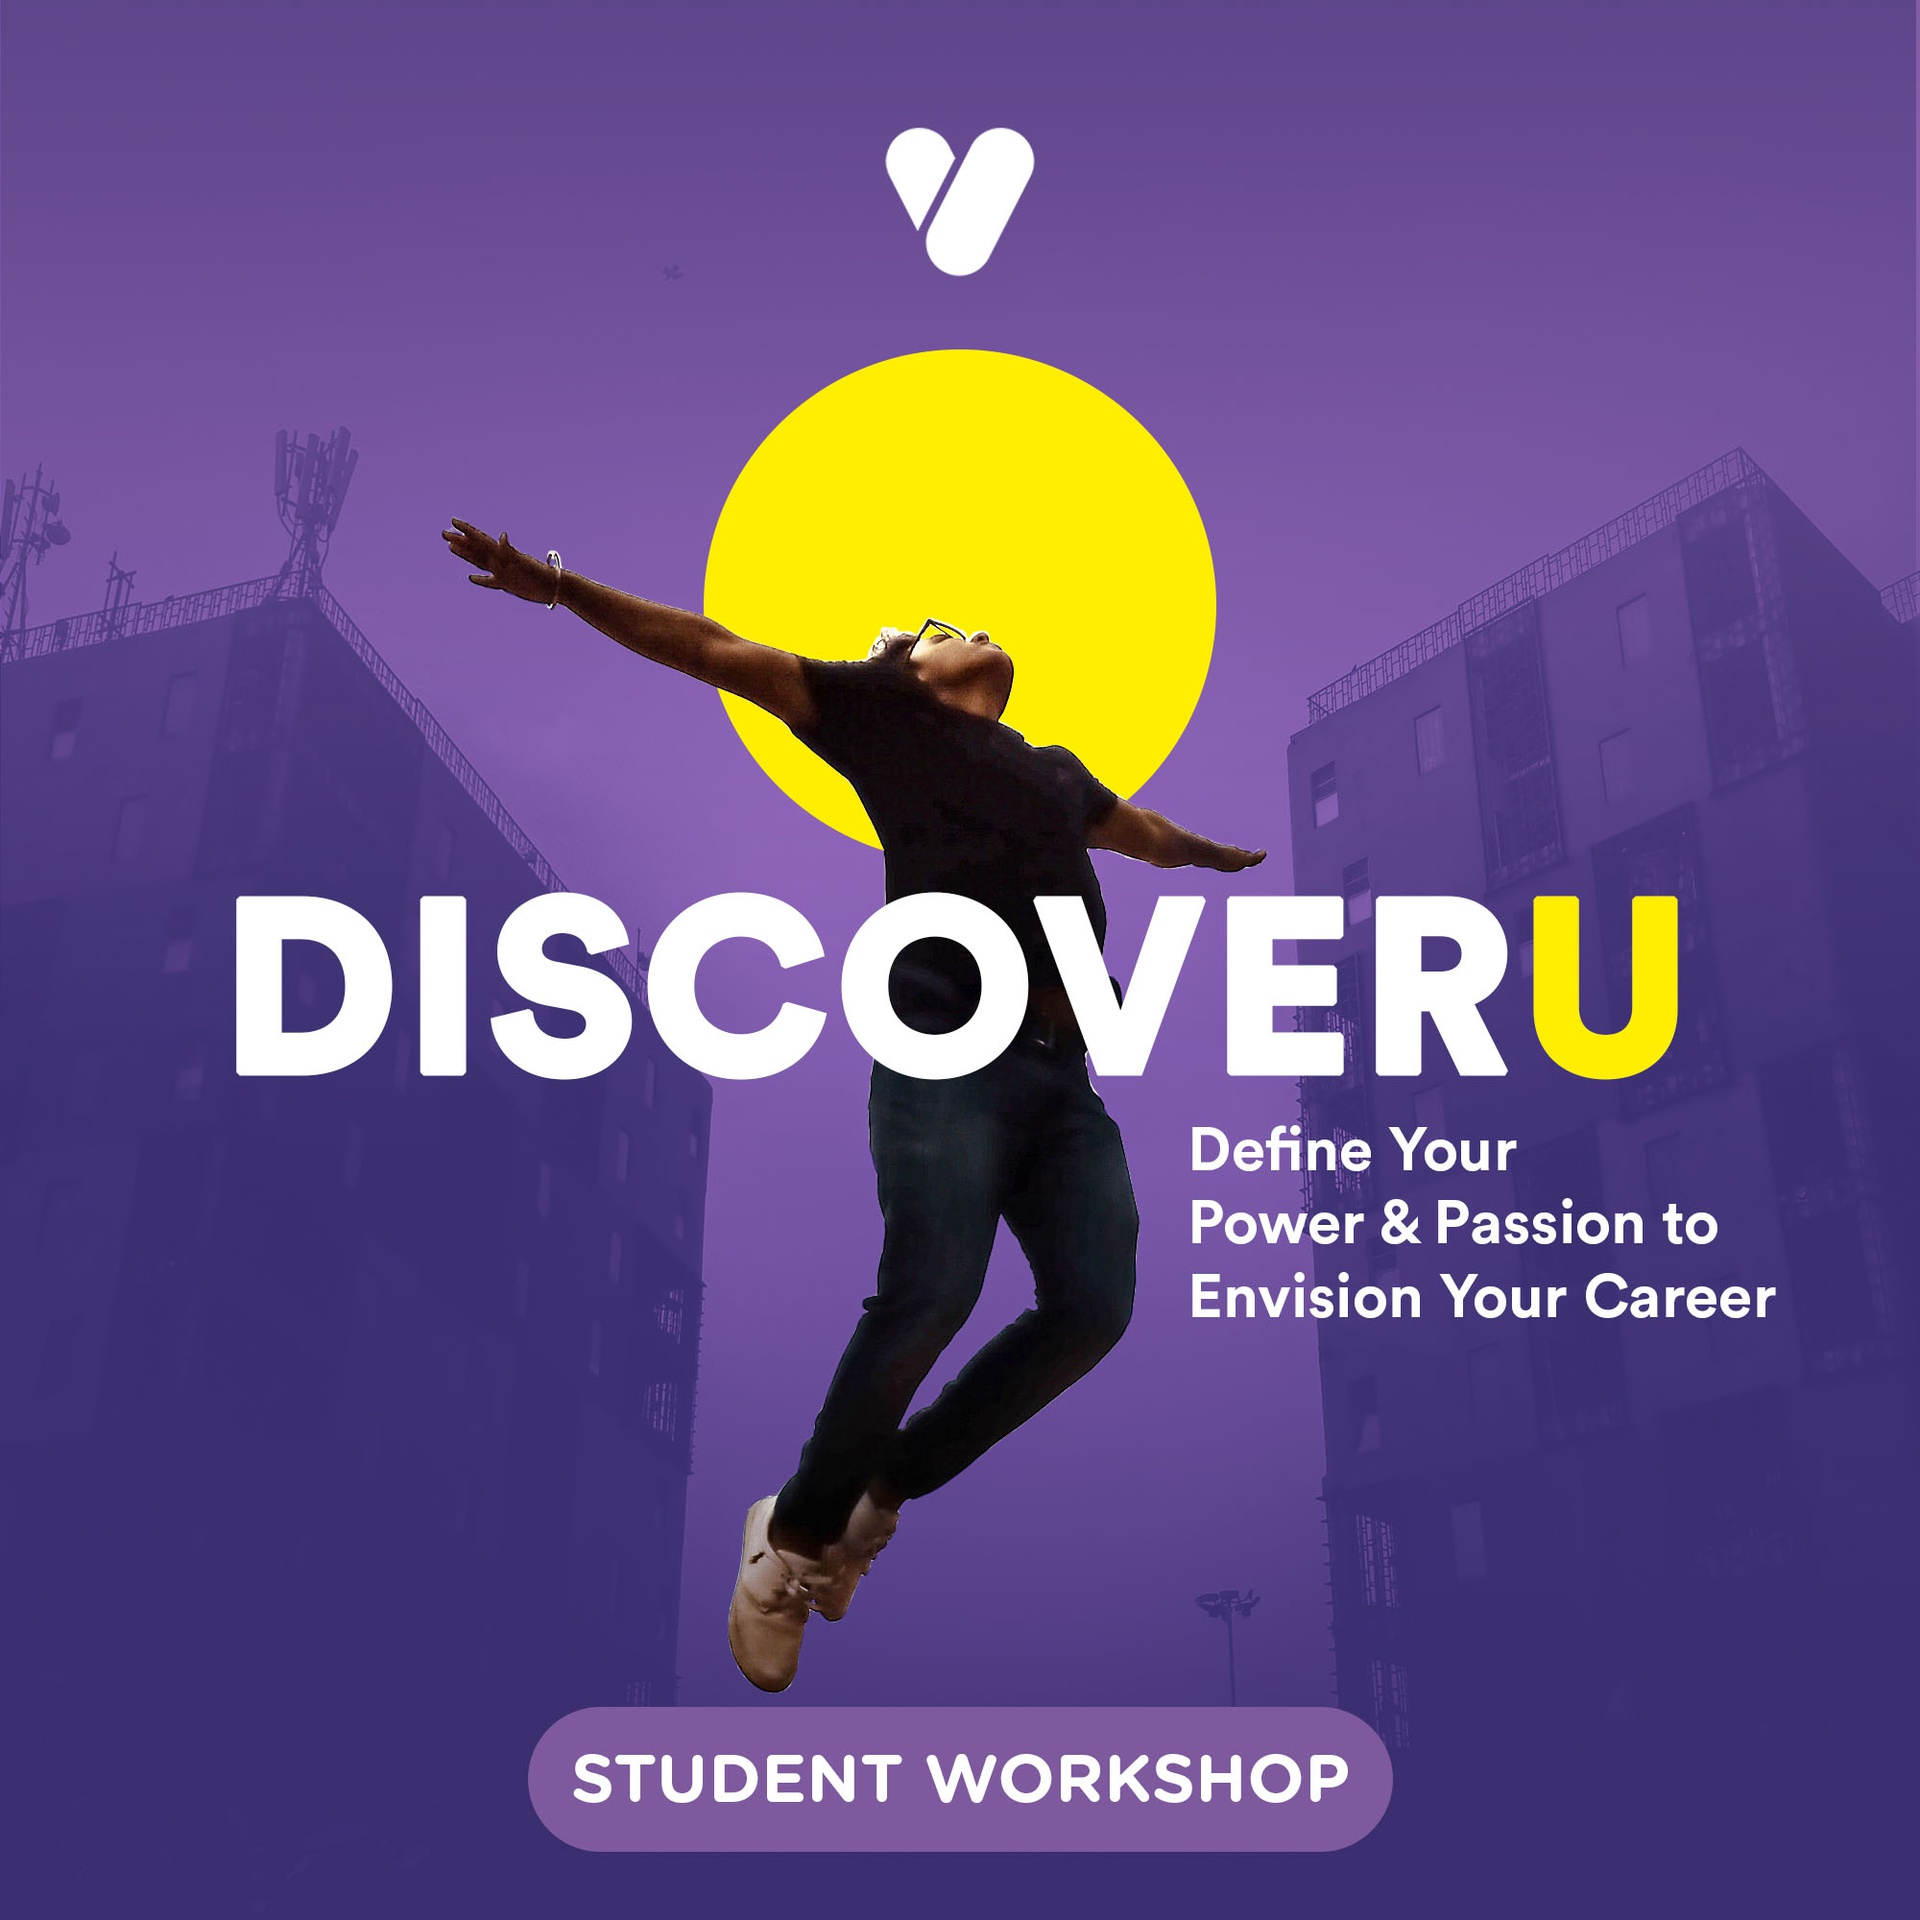 DiscoverU: Define Your Power & Passion to Envision Your Career